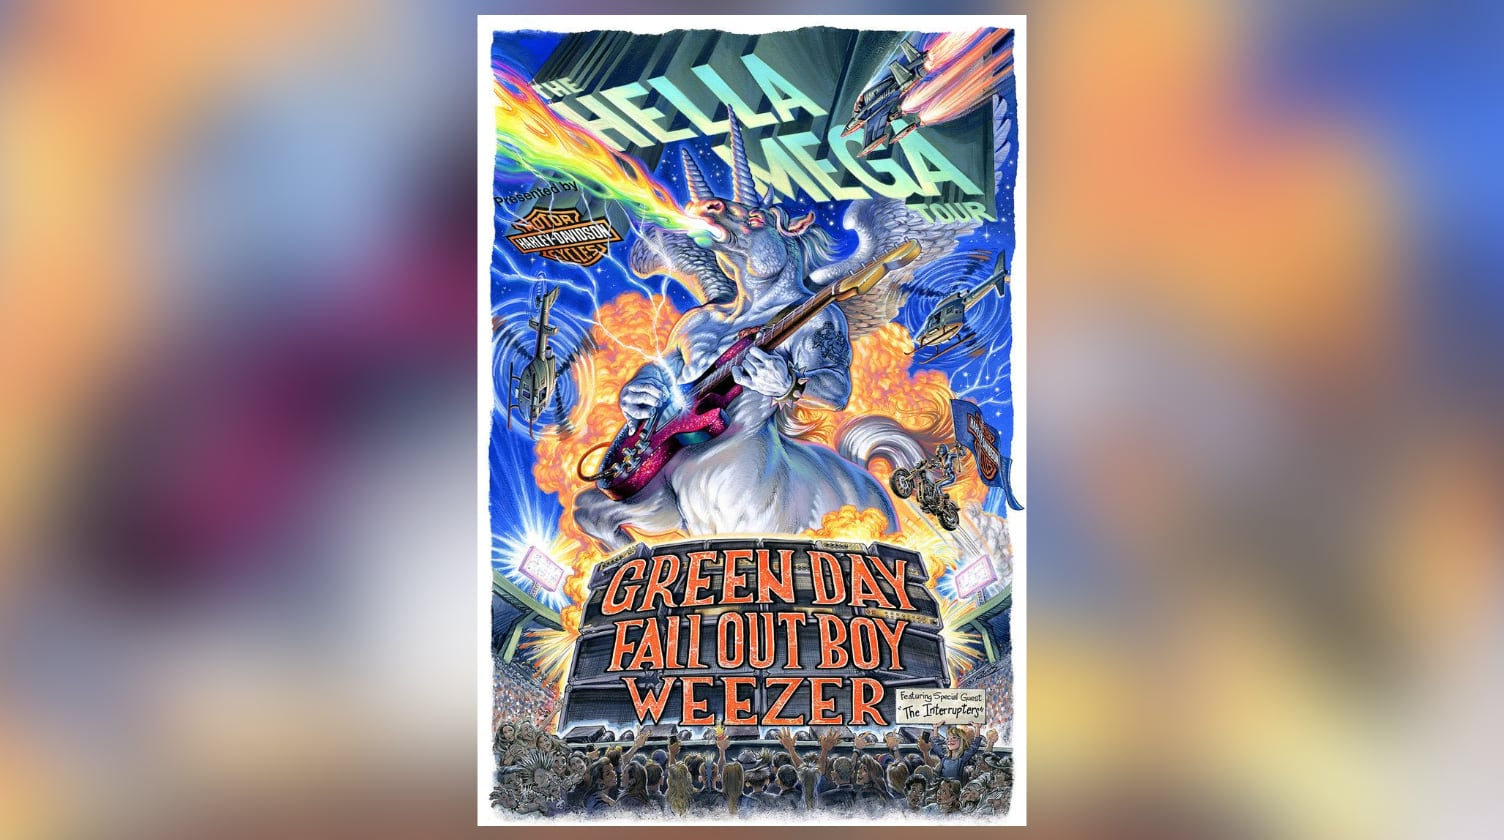 Green Day, Fall Out Boy, Weezer to Tour Together • chorus.fm